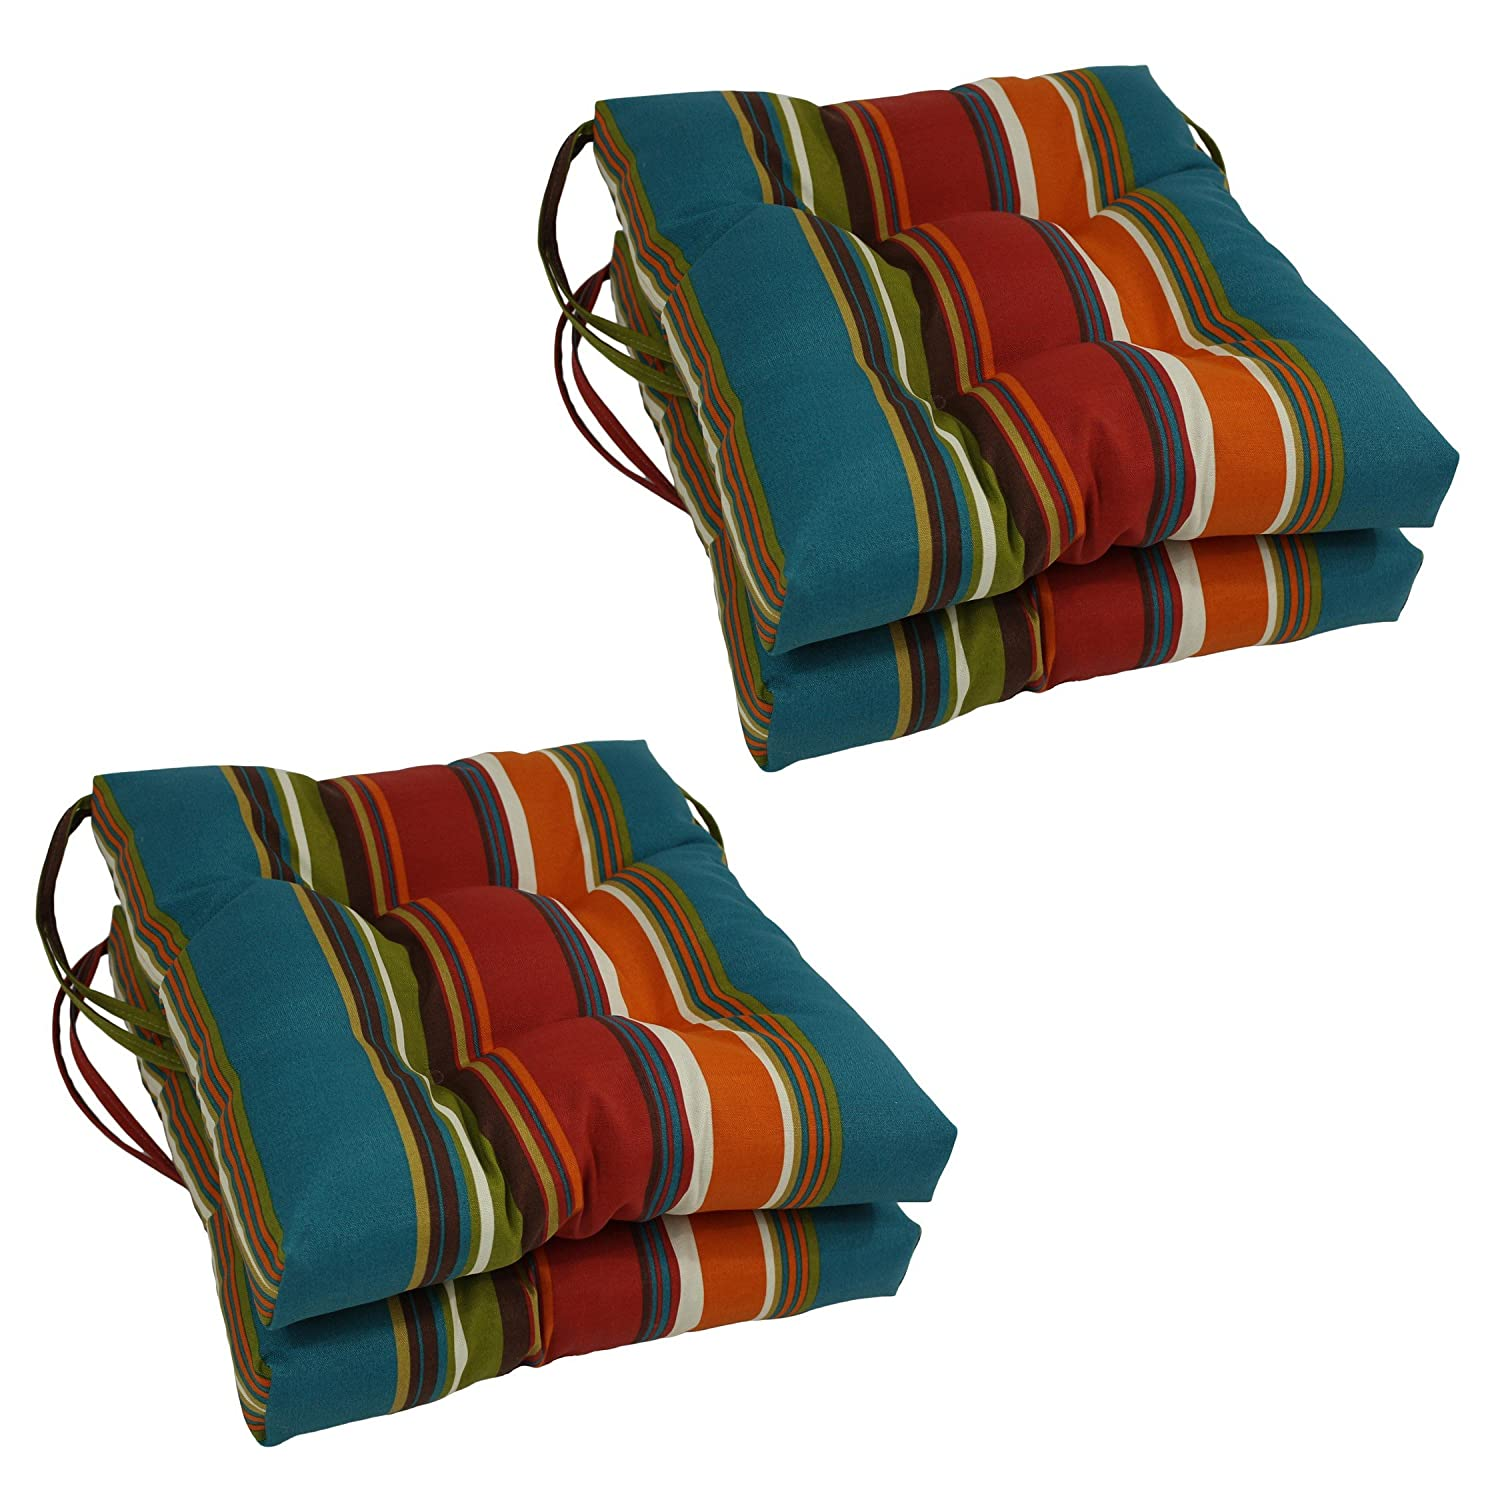 Blazing Needles Spun Polyester Patterned Outdoor Square Tufted Chair Cushions Set, Set of 4, 16 , Westport Teal